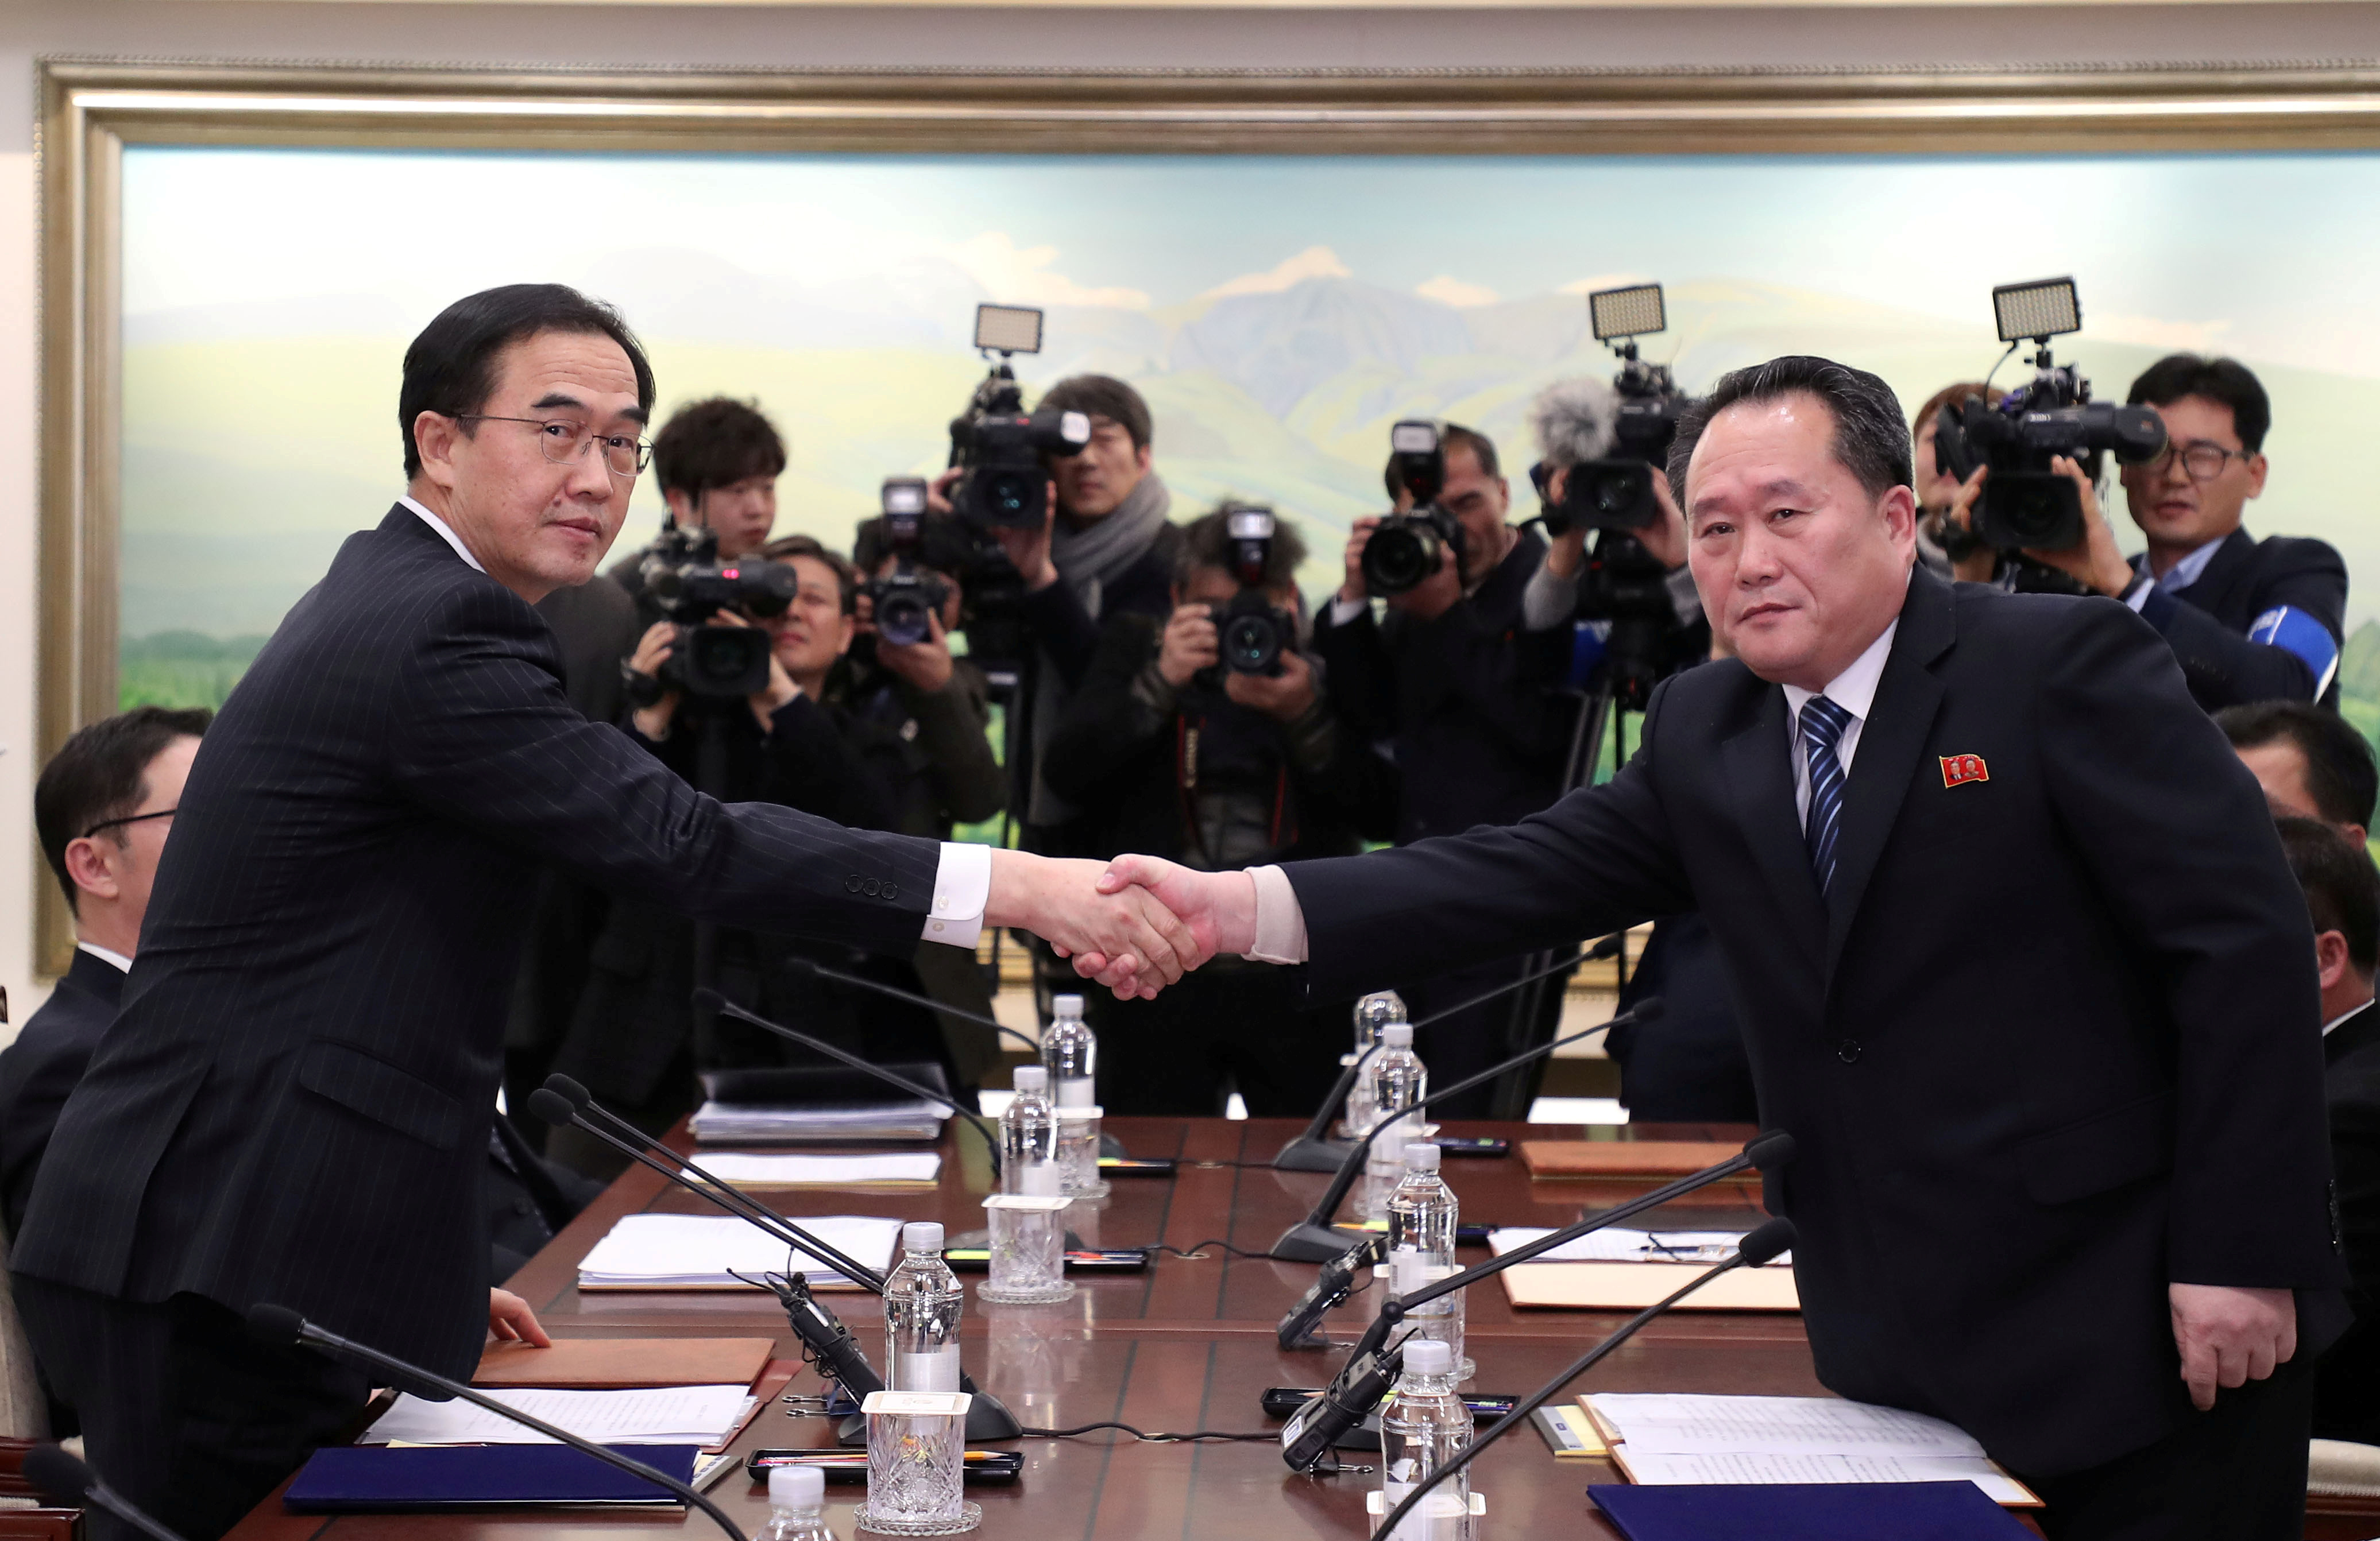 Head of the North Korean delegation, Ri Son Gwon (right) shakes hands with his South Korean counterpart Cho Myoung-gyon as they exchange documents after their meeting at the truce village of Panmunjom in the demilitarized zone separating the two Koreas on